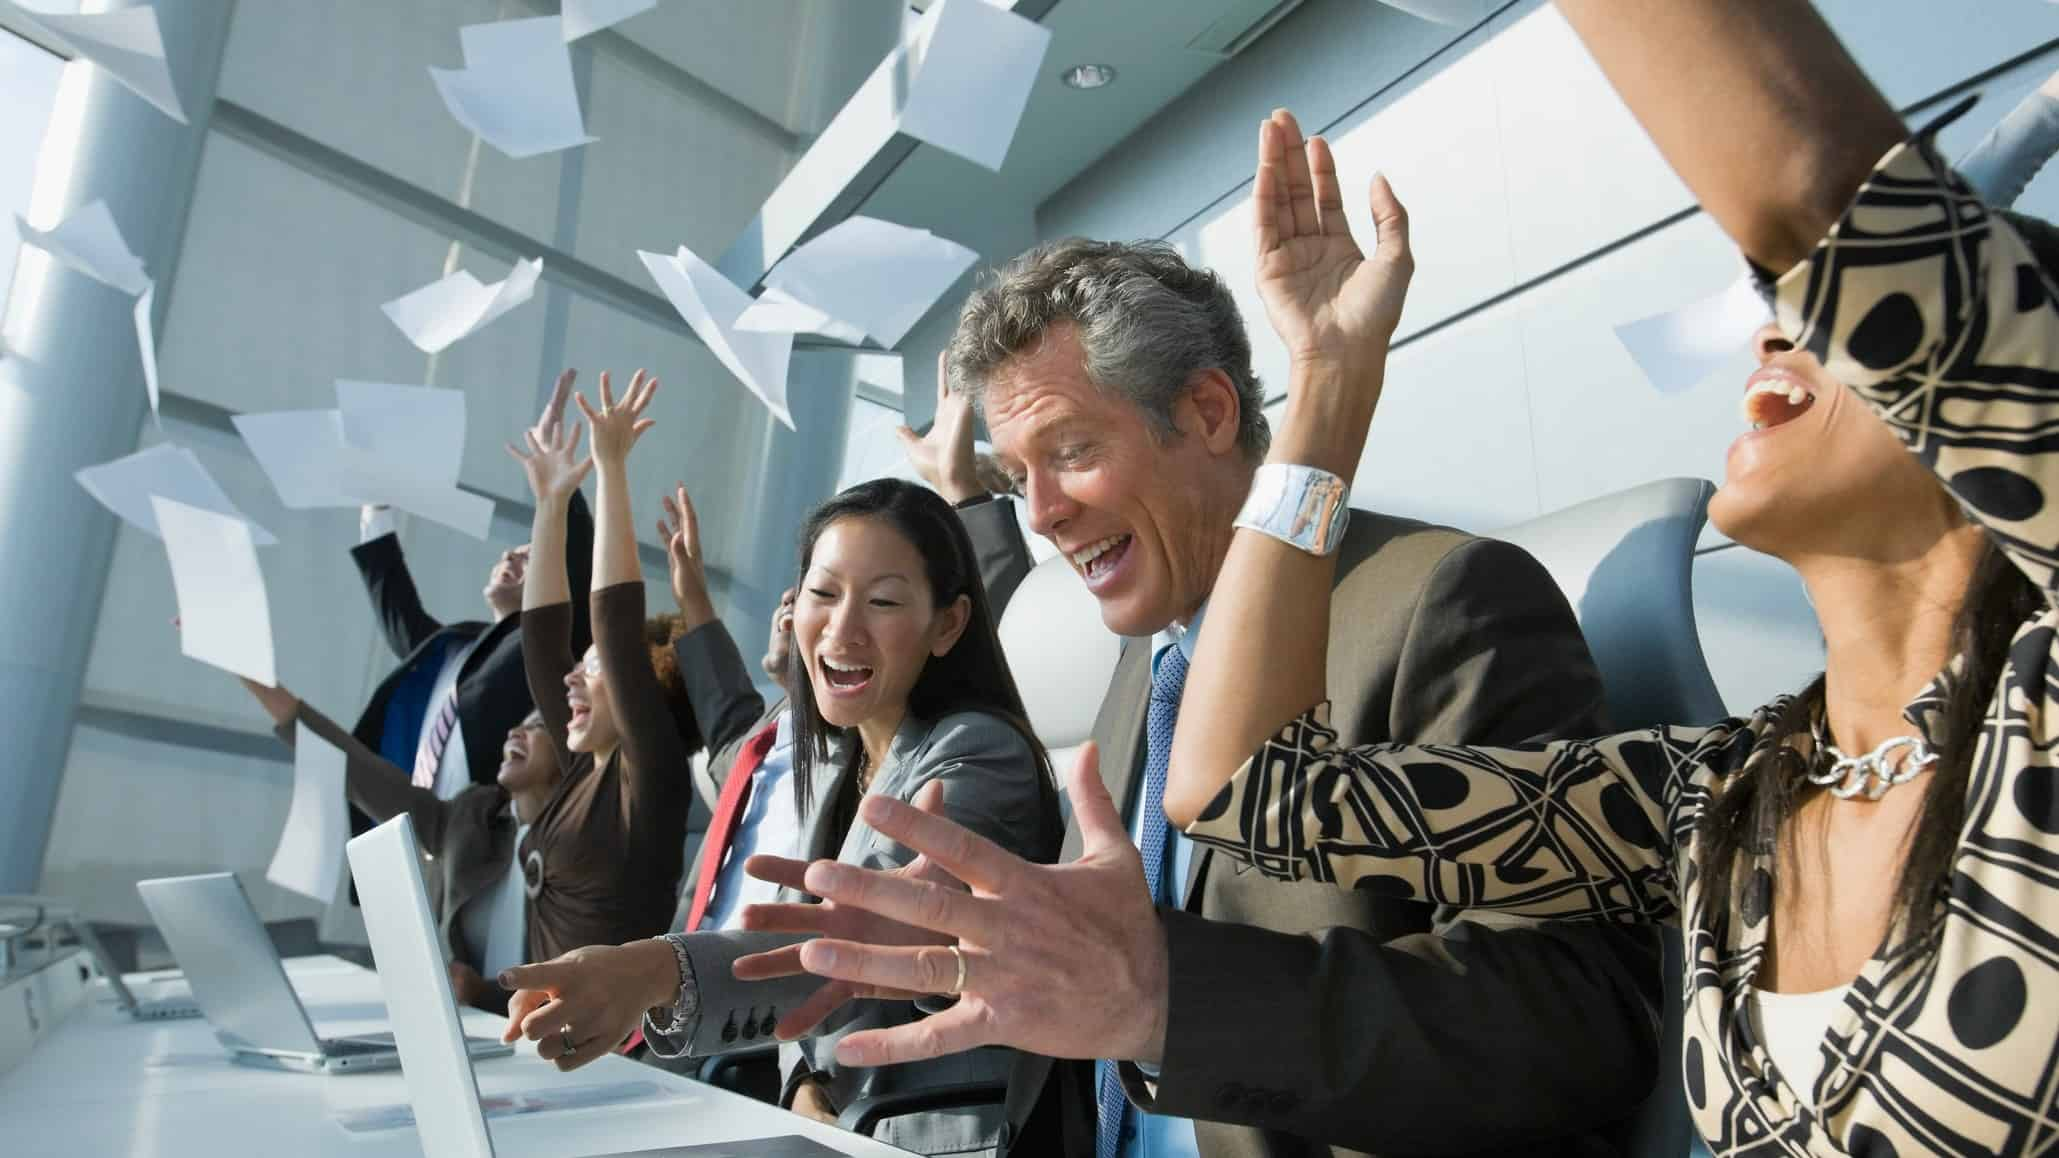 A group of happy office workers throw papers in the air and cheer.